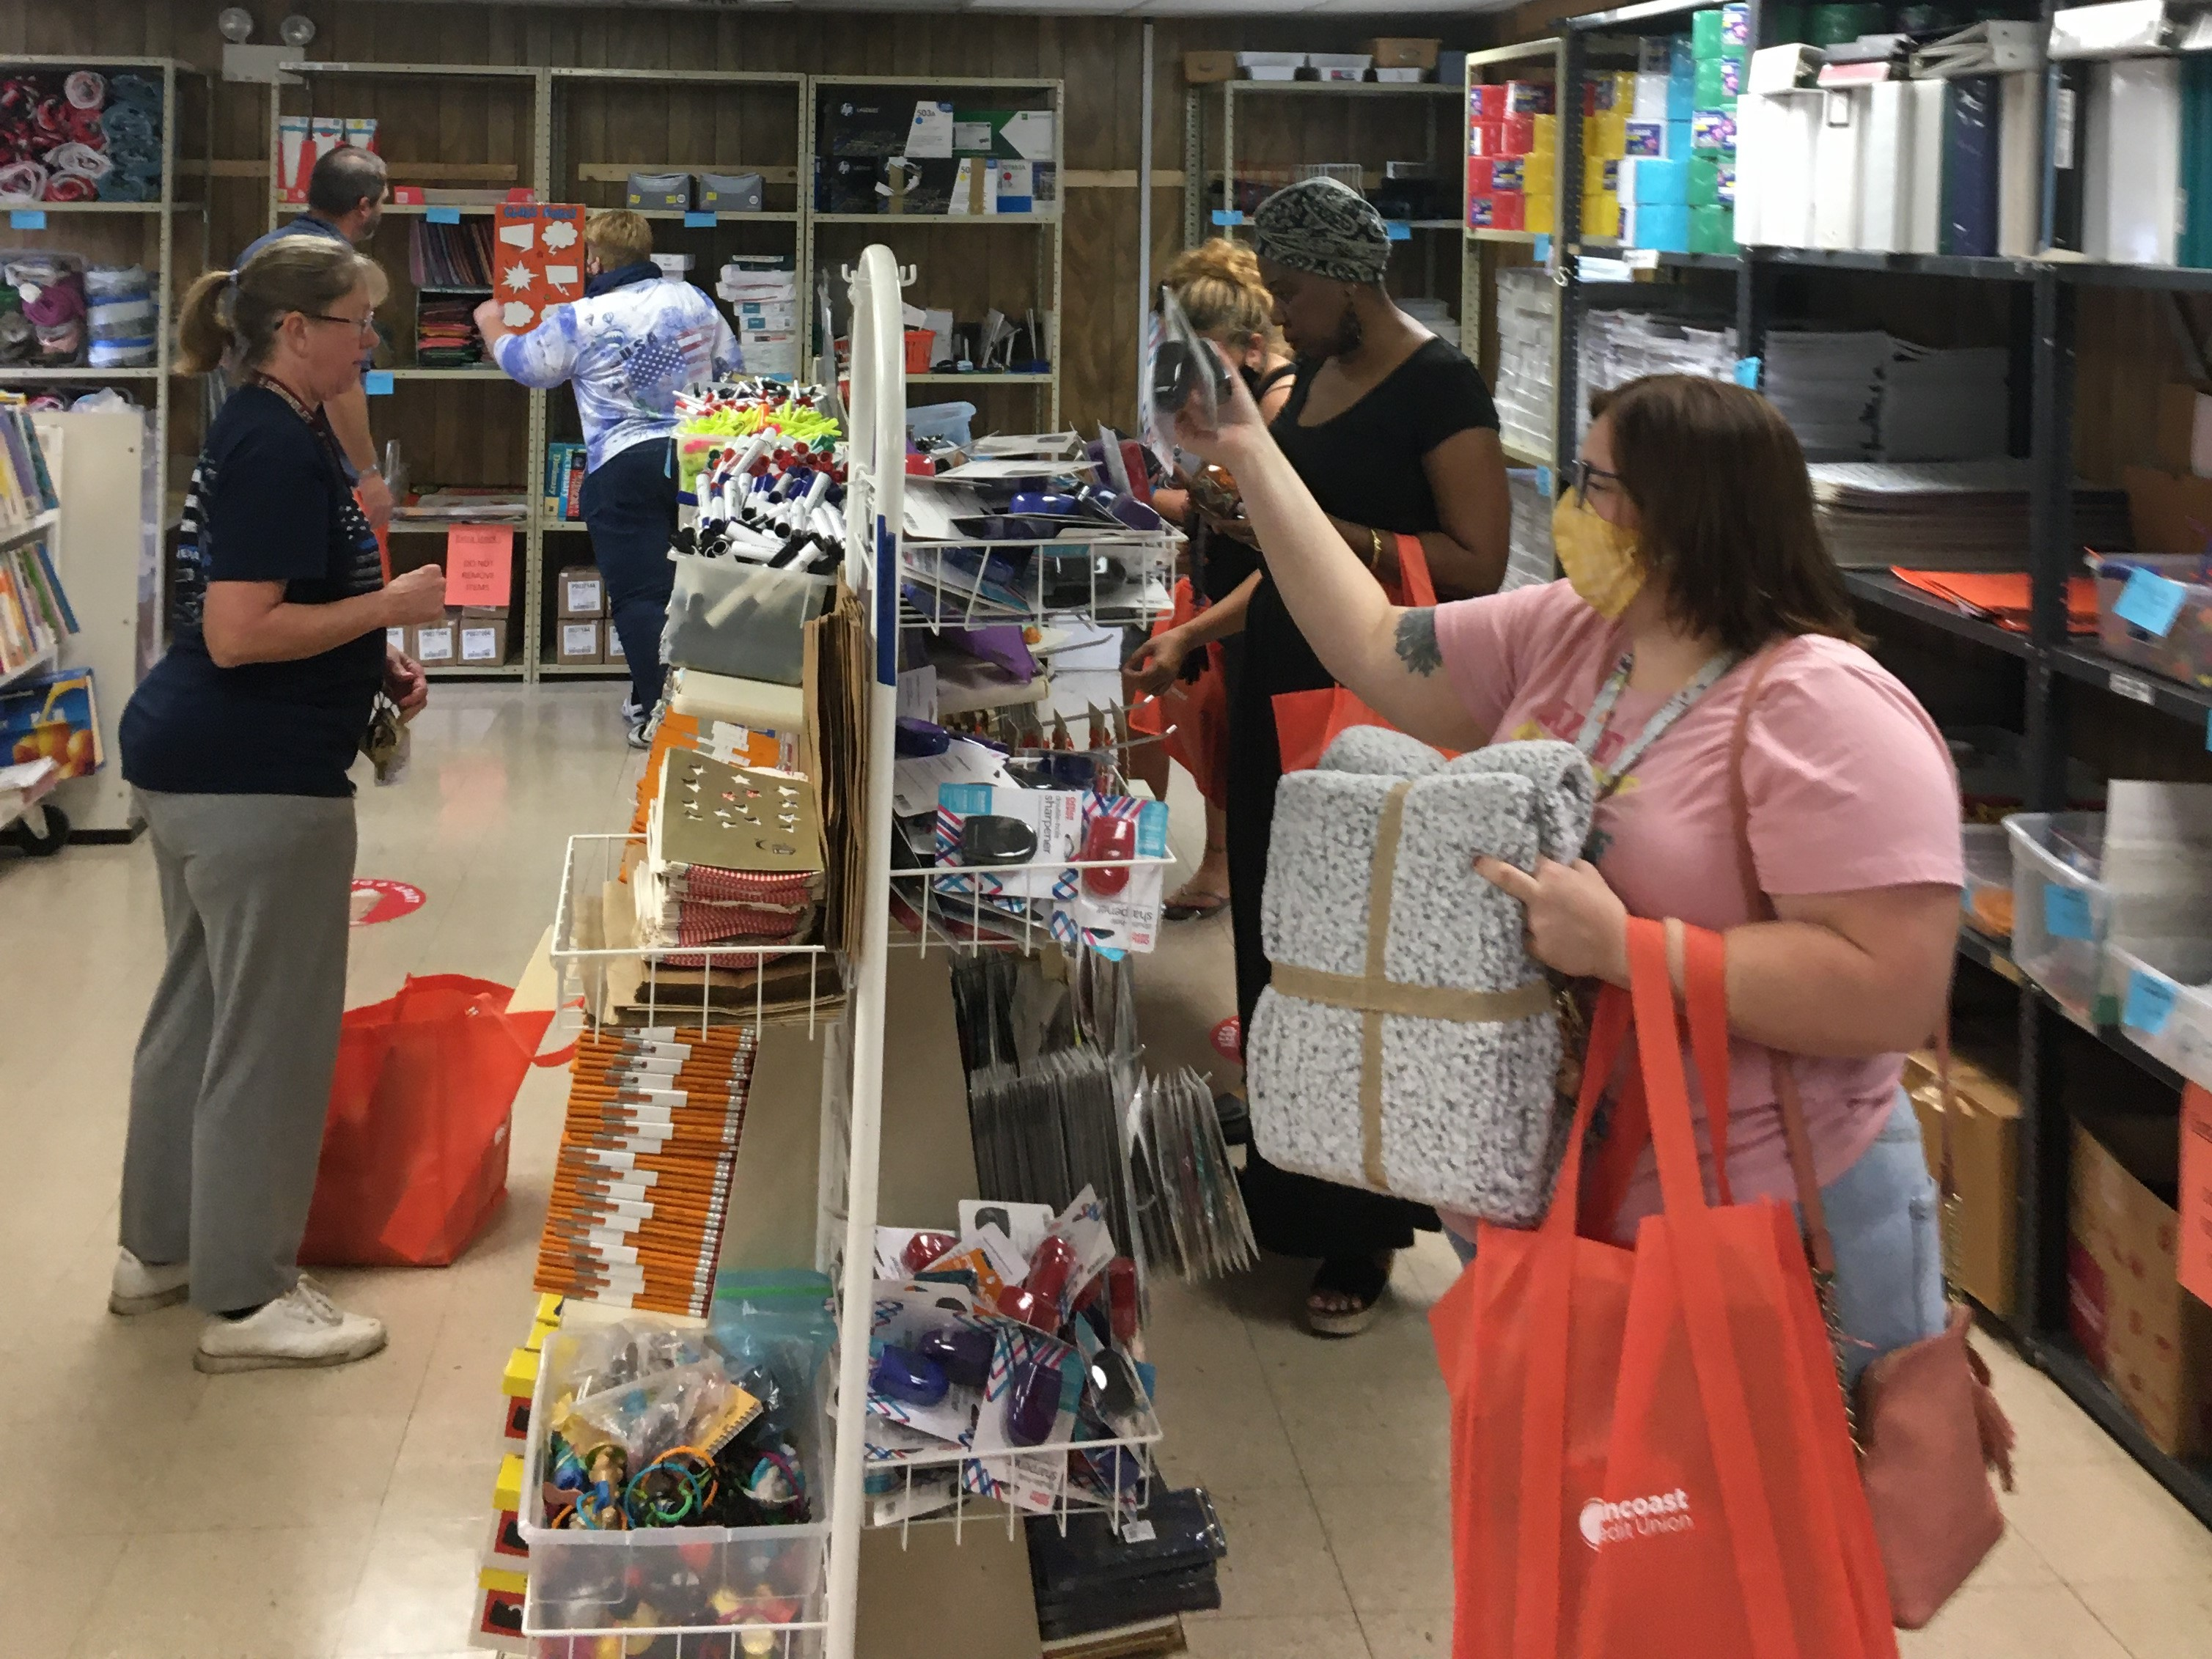 Teachers picking out items at the Free Teacher Market